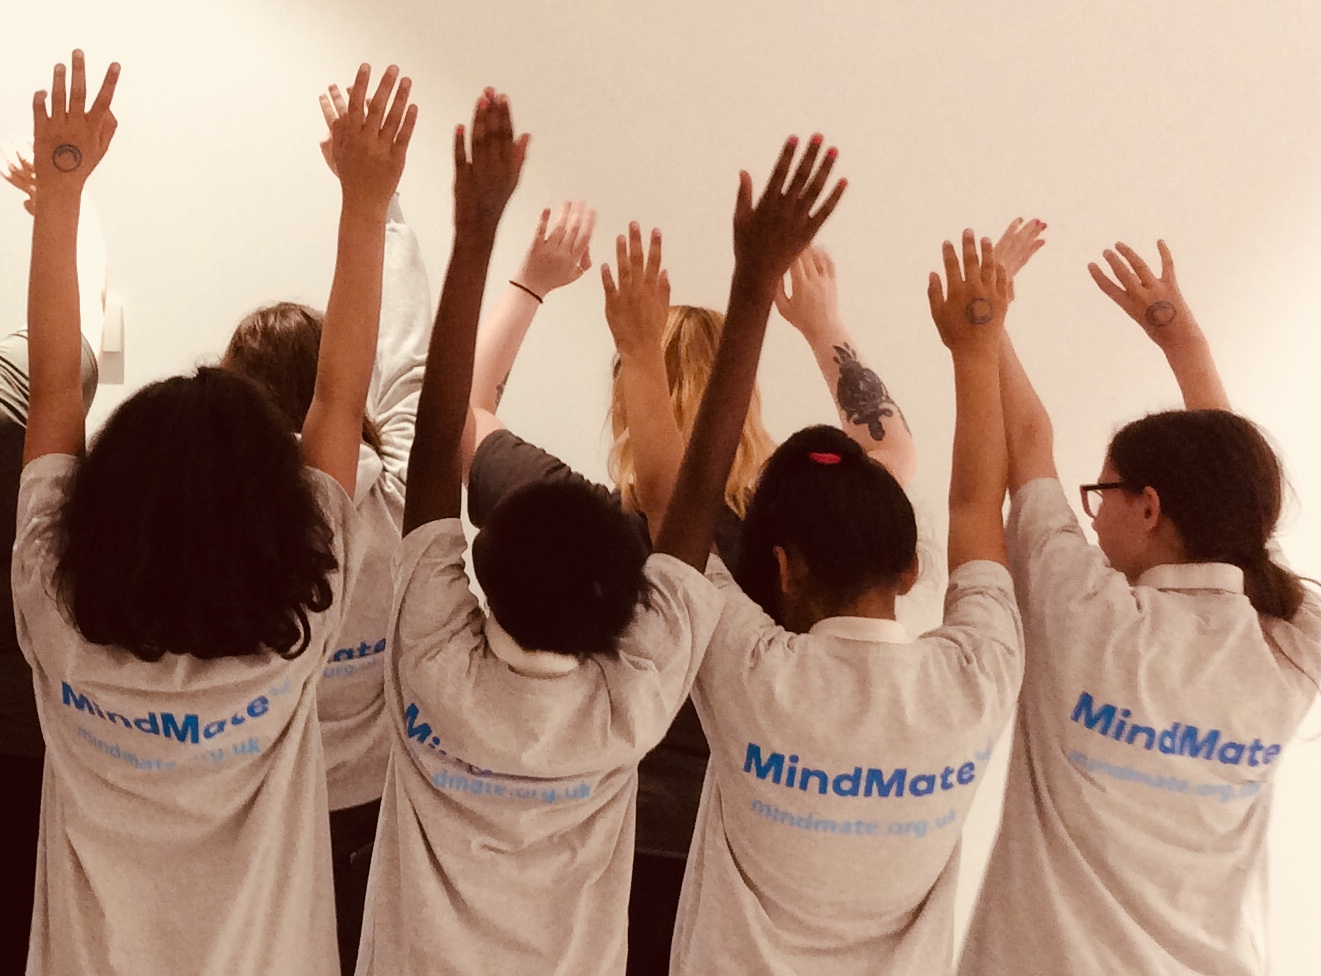 Group of young girls with hands in the air wearing MindMate shirts